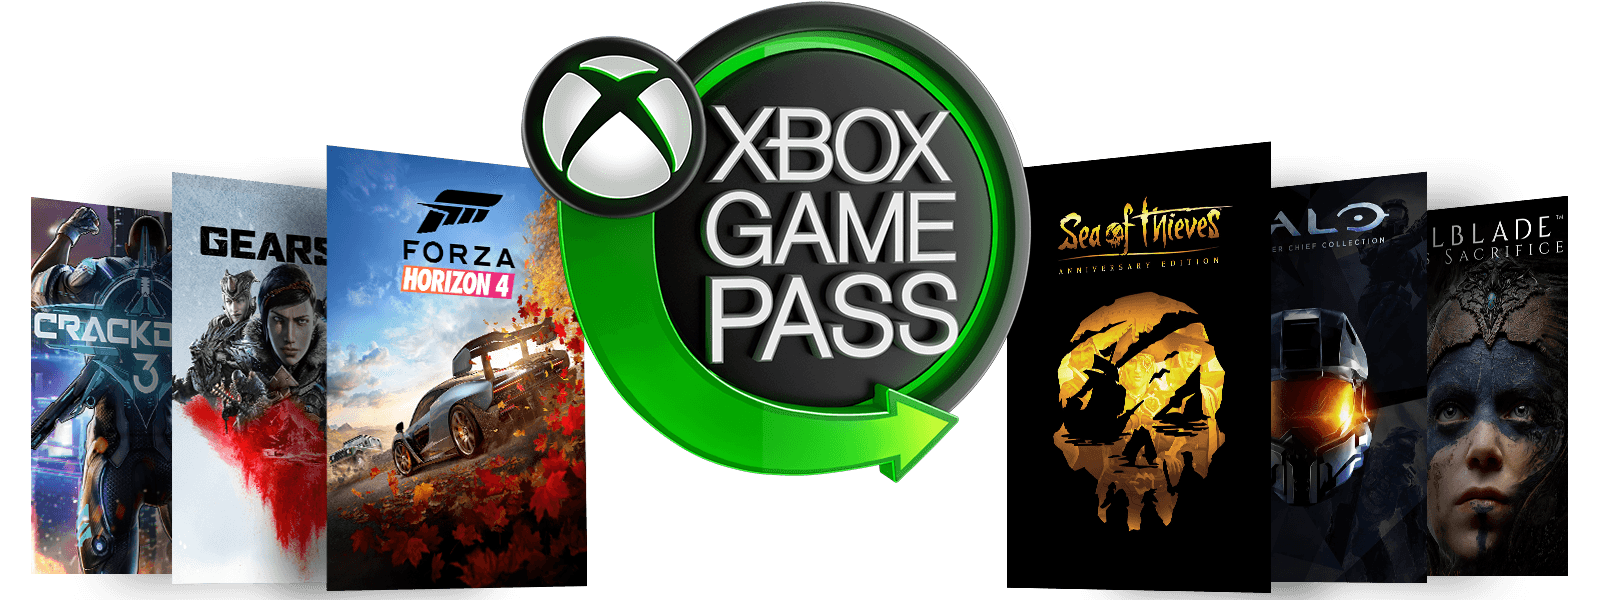 Coffrets de Sea of Thieves, PLAYERUNKNOWNS Battleground, Forza Horizon 4, Crackdown 3, Halo The Master Chief Collection et Hellblade Senua's Sacrifice entourant le logo vert néon du Xbox Game Pass